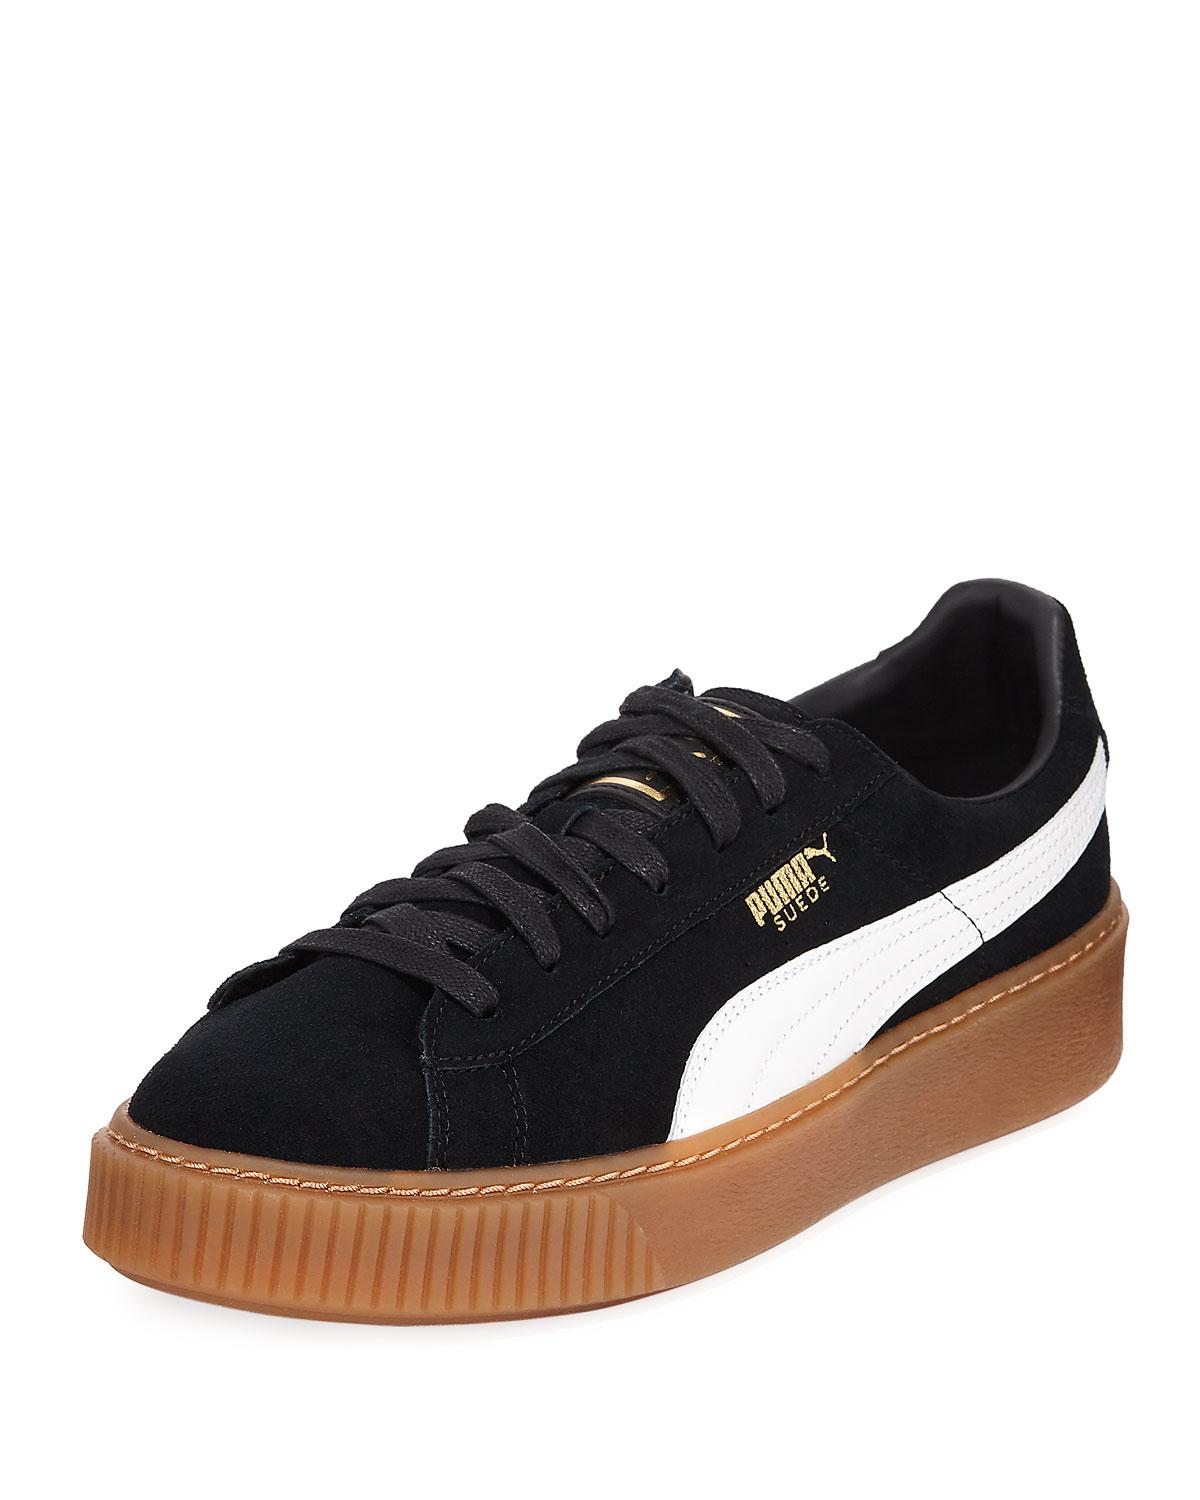 bf12a435900 Lyst - PUMA Puma Basket Platform Trainers in Black for Men - Save 44%